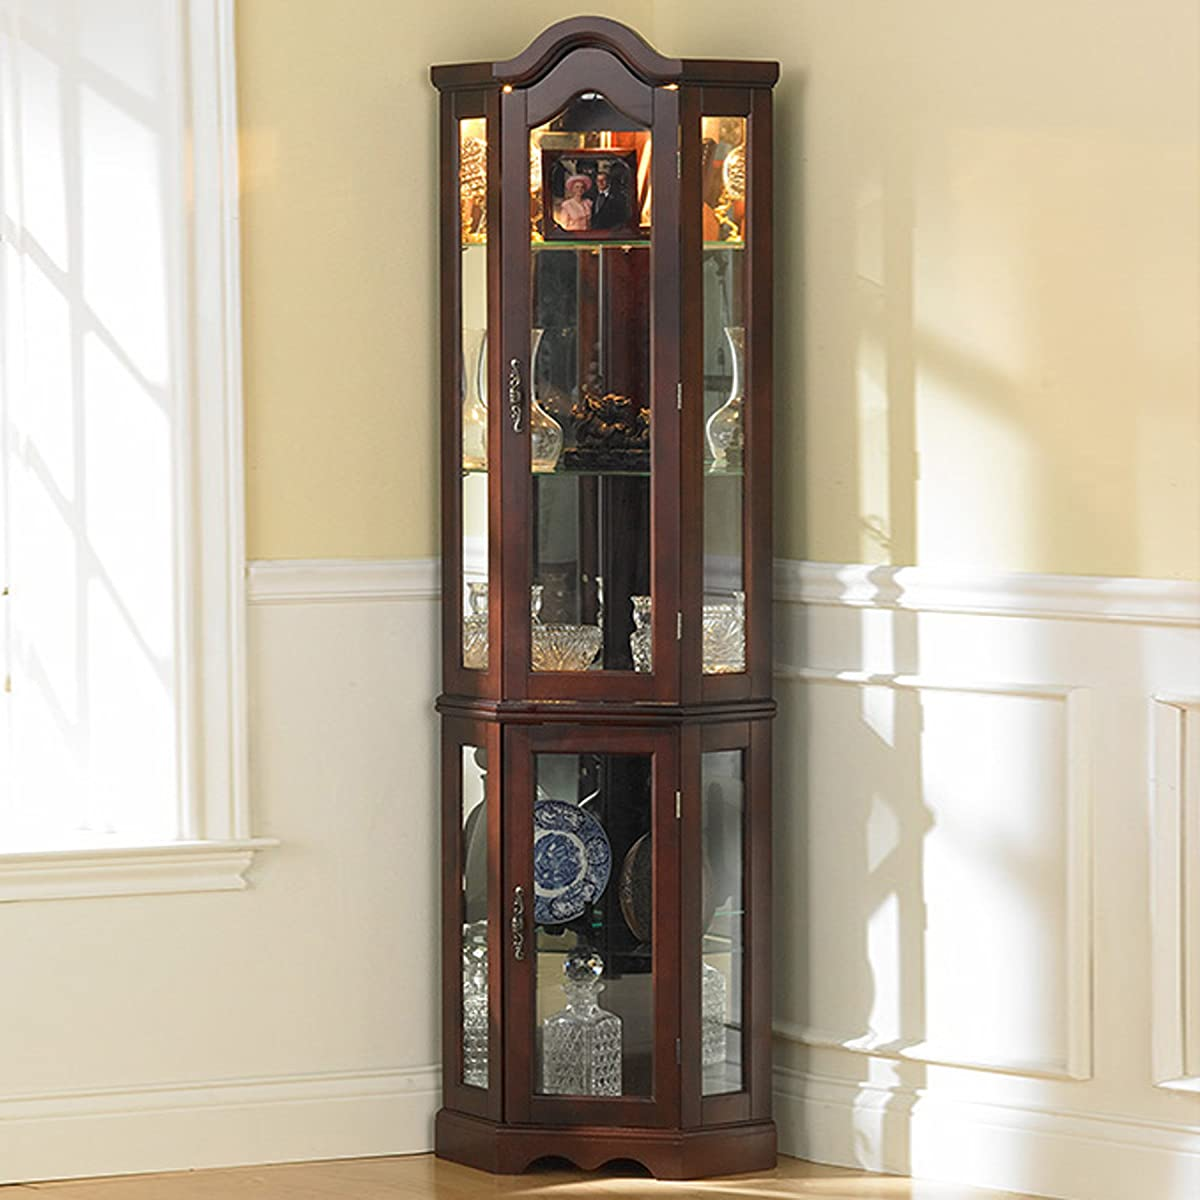 Southern Enterprises Lighted Corner Curio Cabinet, Mahogany Finish with Antique Hardware